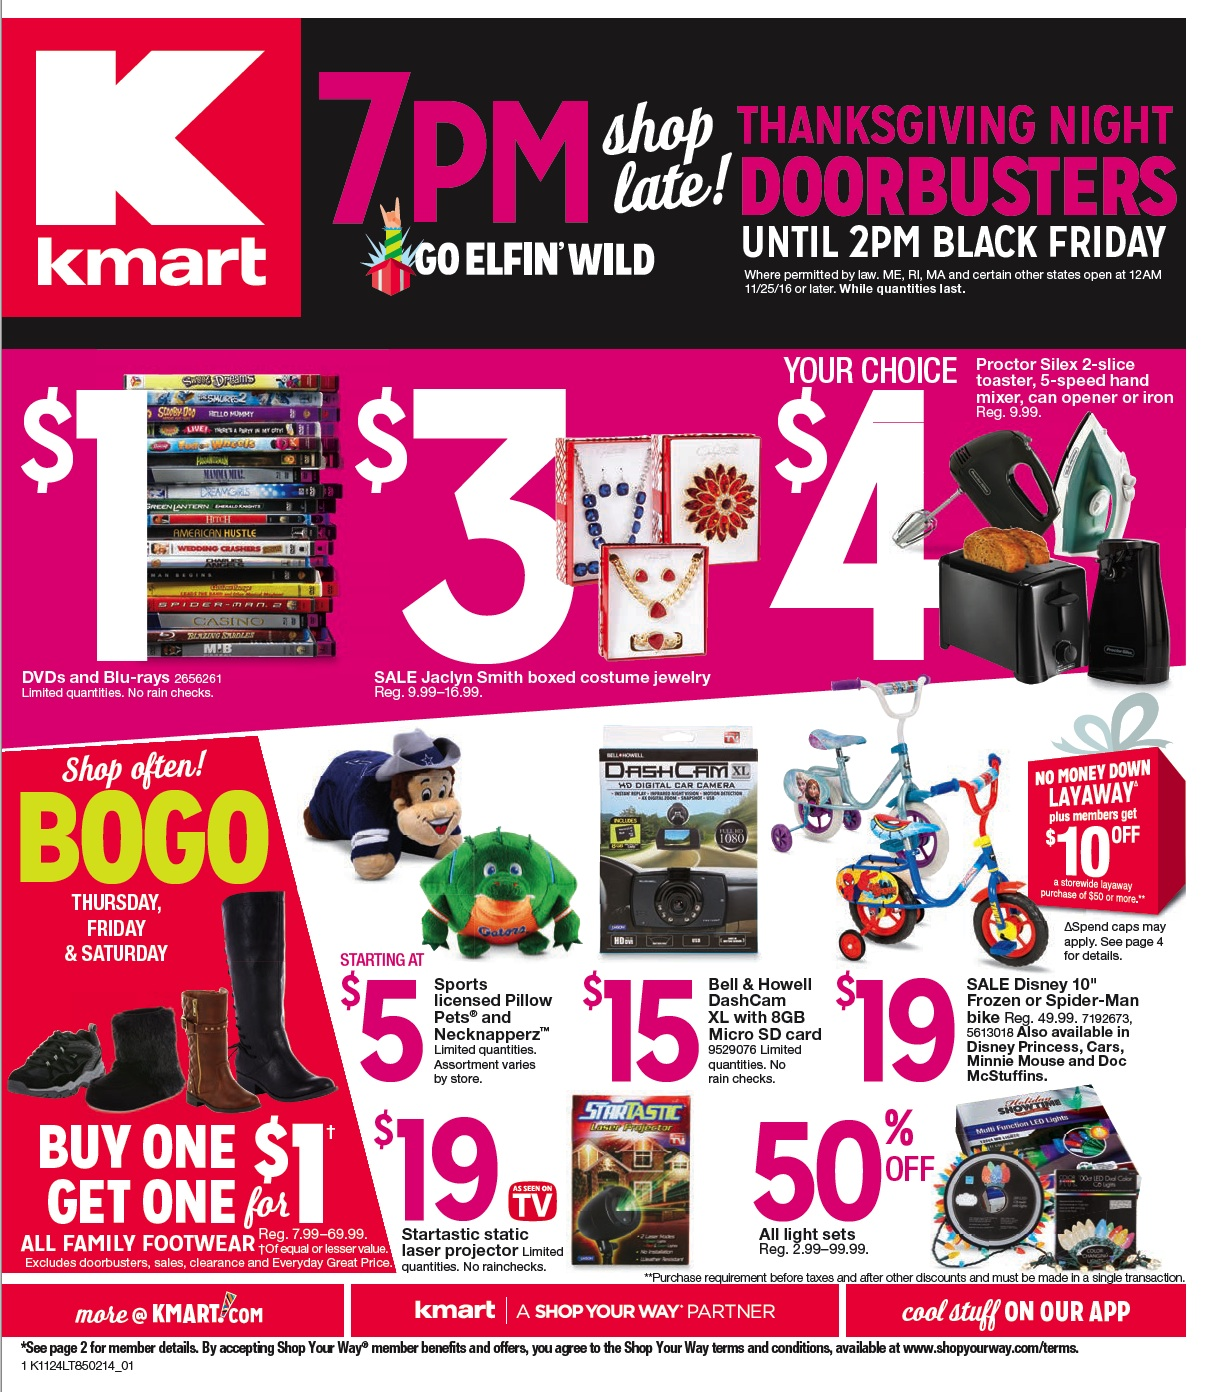 Back Friday Kmart Black Friday 2017 Funtober